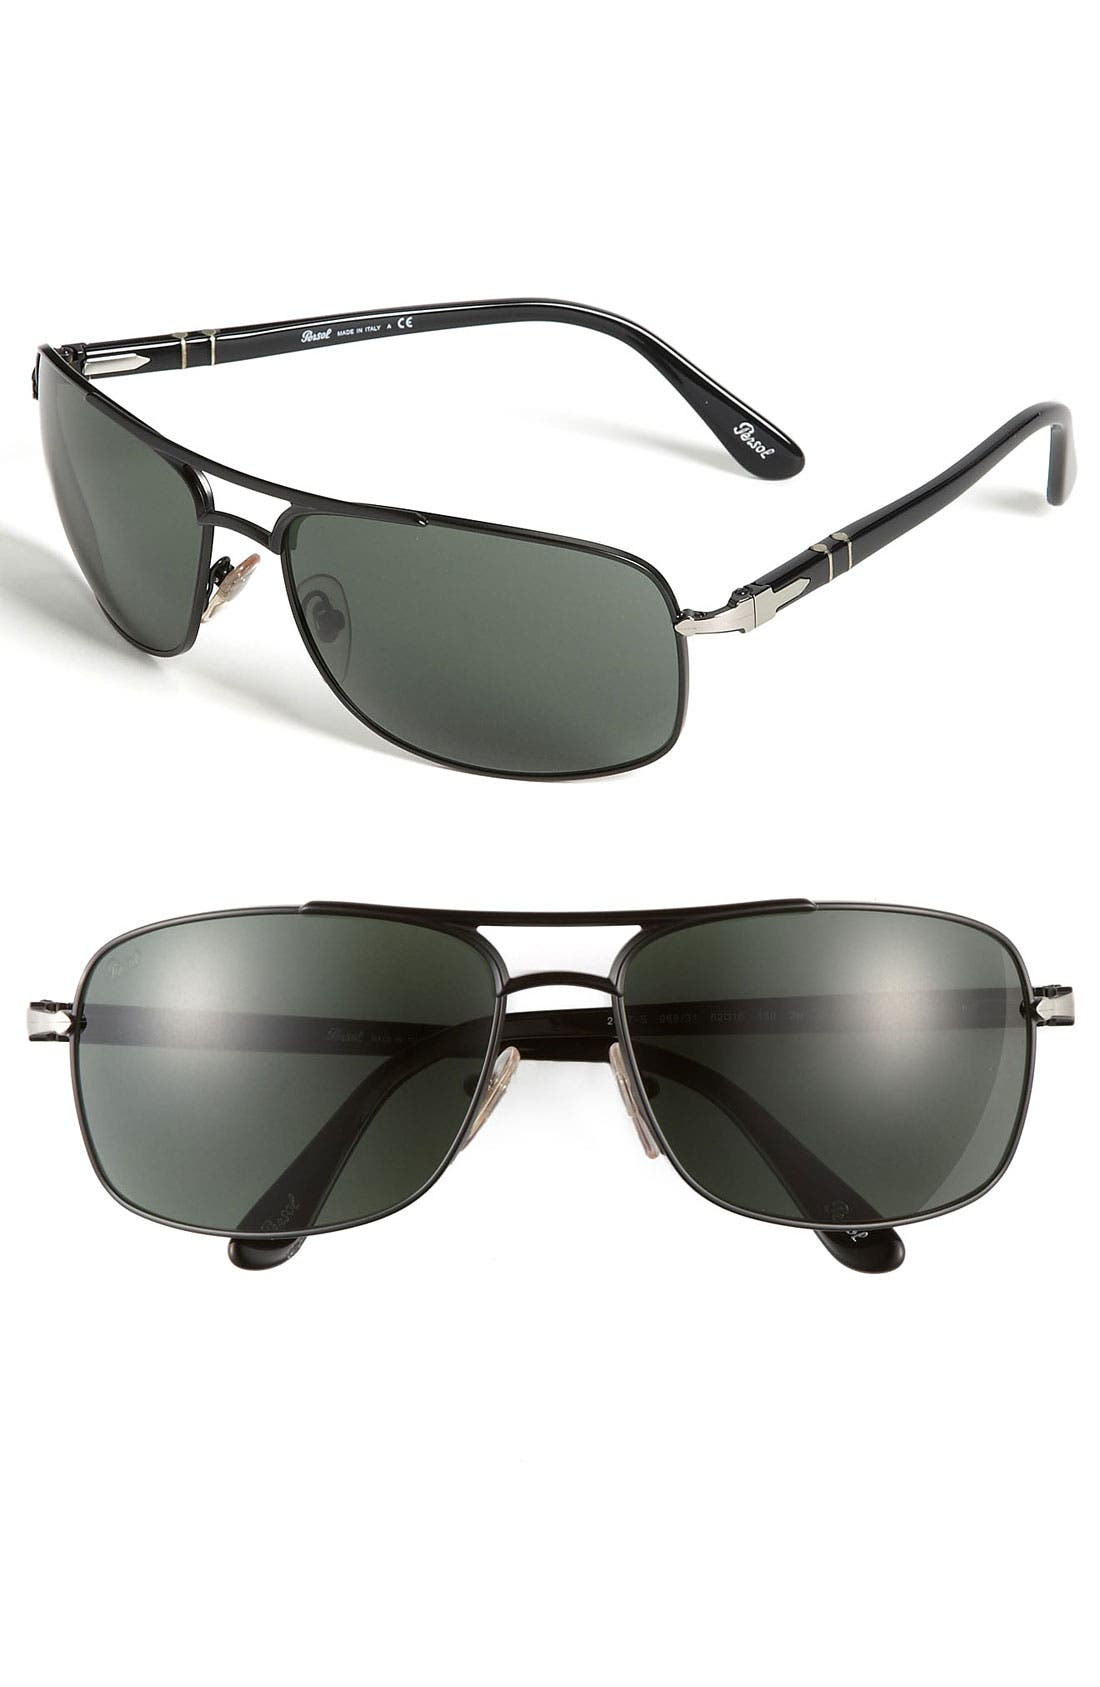 Main Image - Persol 62mm Sunglasses